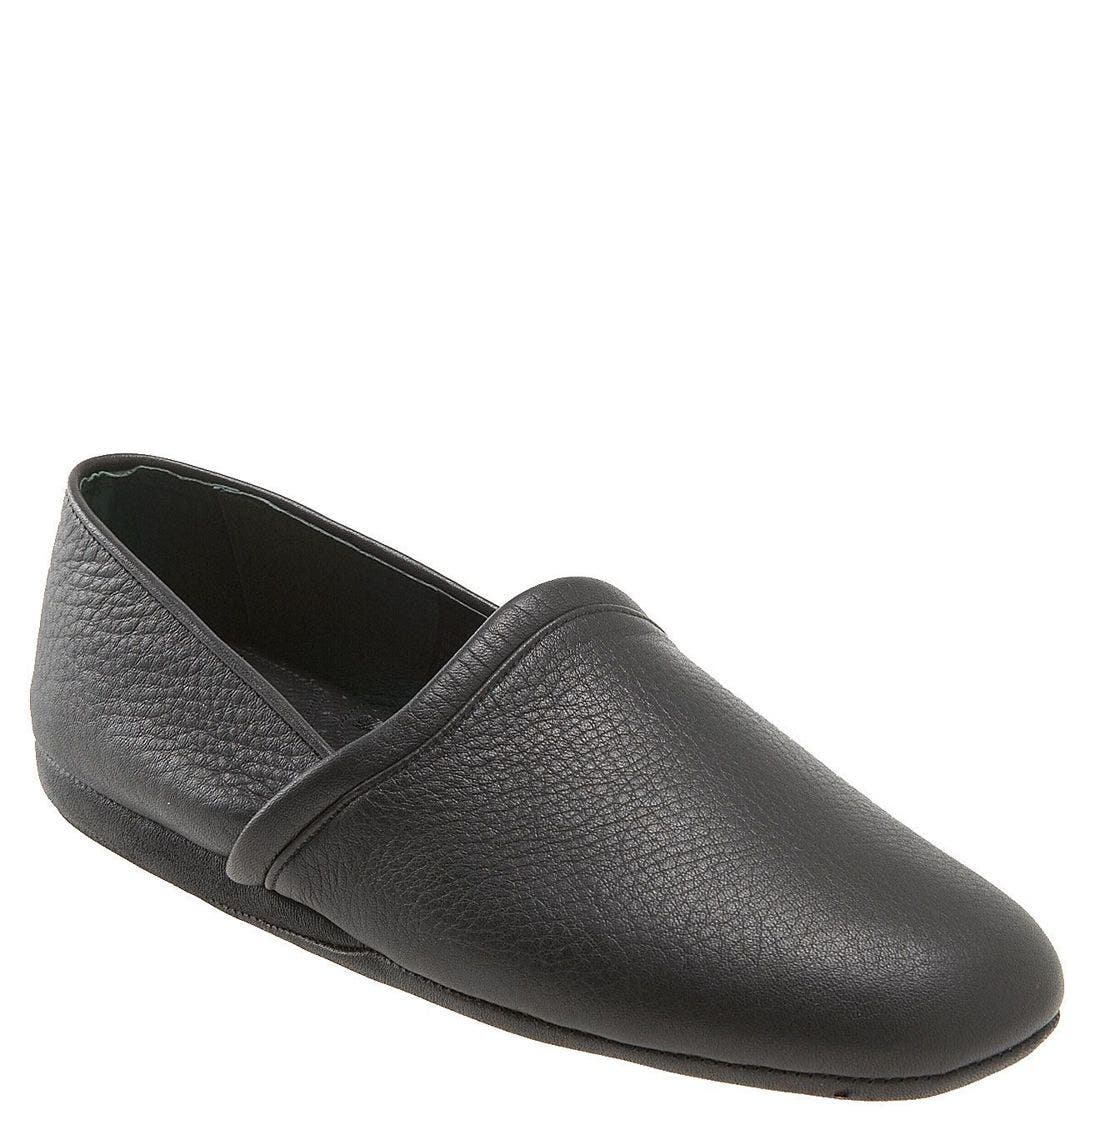 L.B. Evans 'Aristocrat Opera' Slip-On